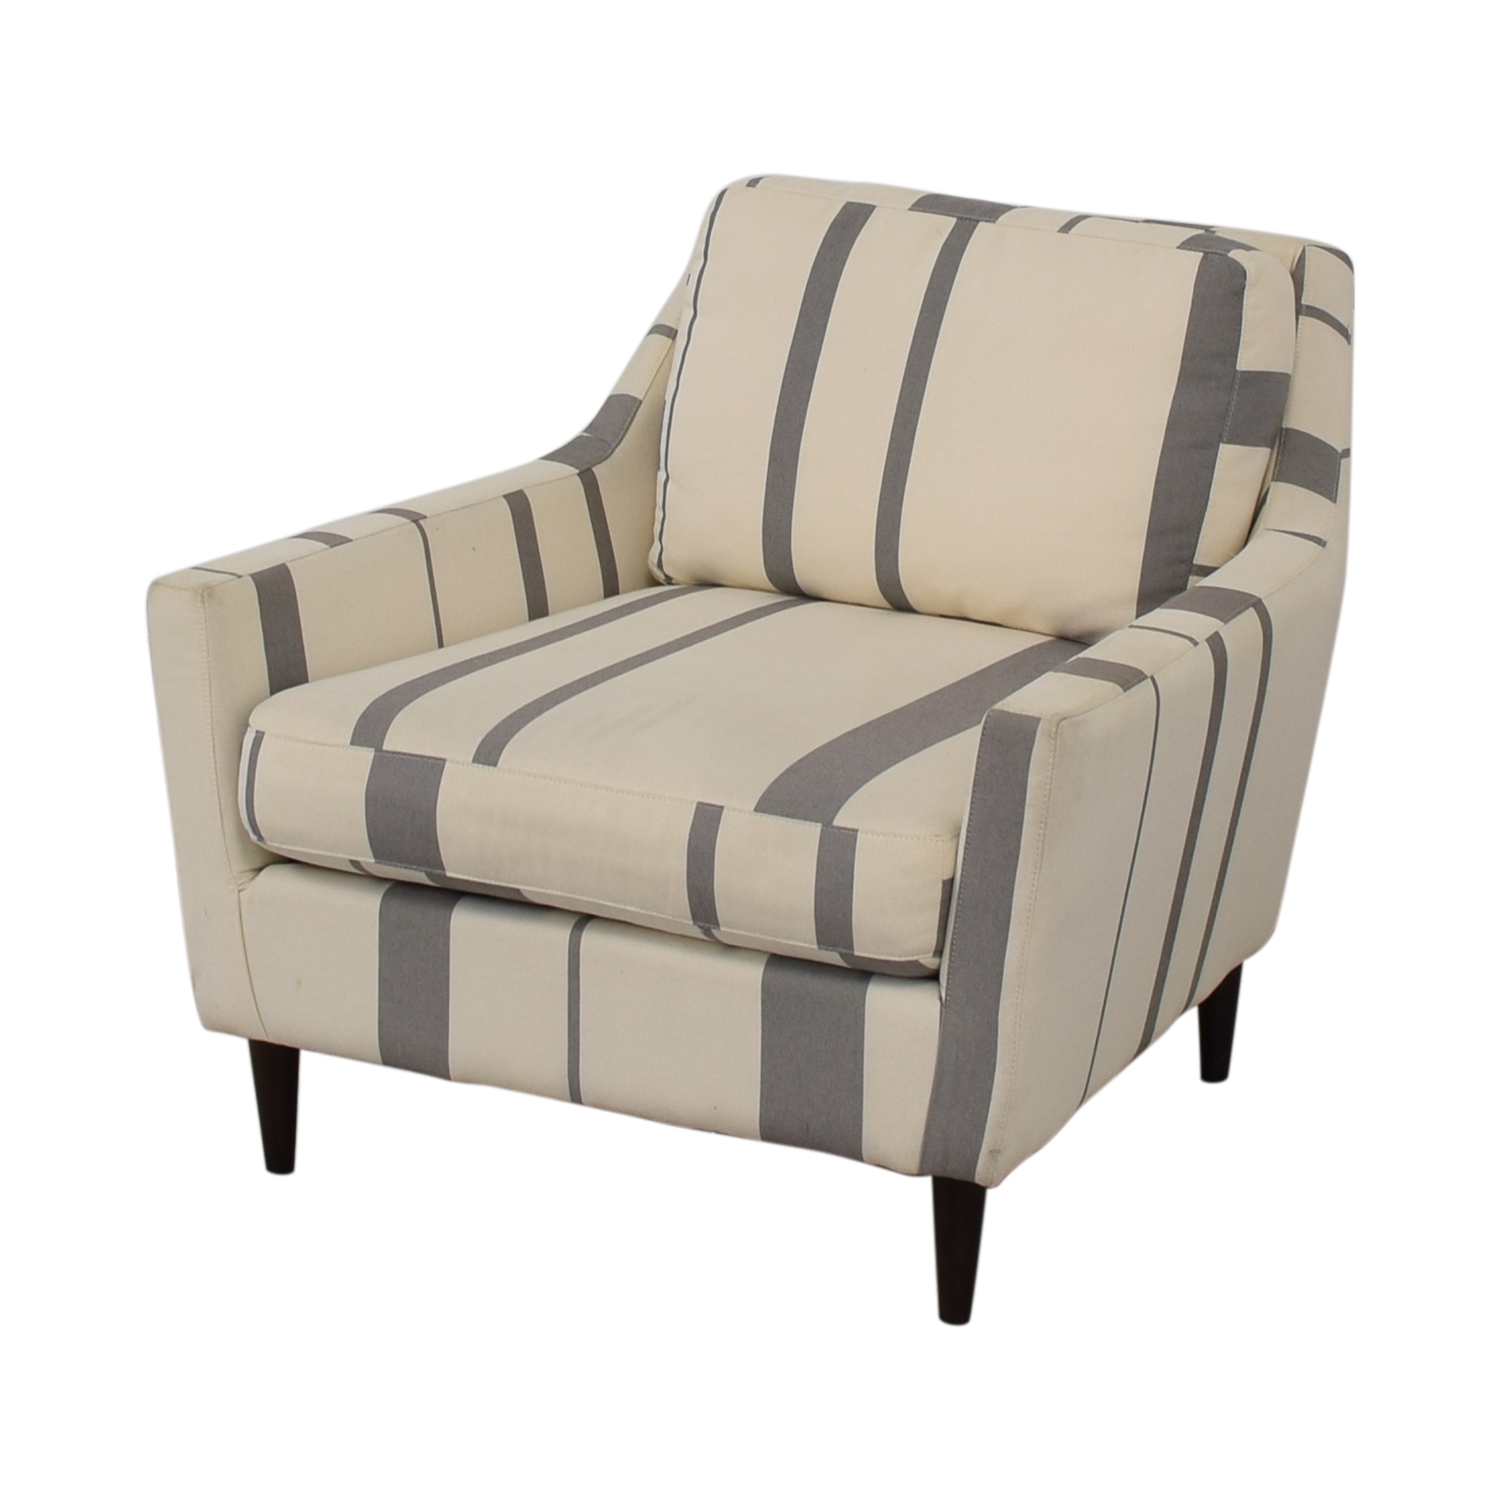 West Elm West Elm Everett Grey and White Striped Accent Chair Accent Chairs